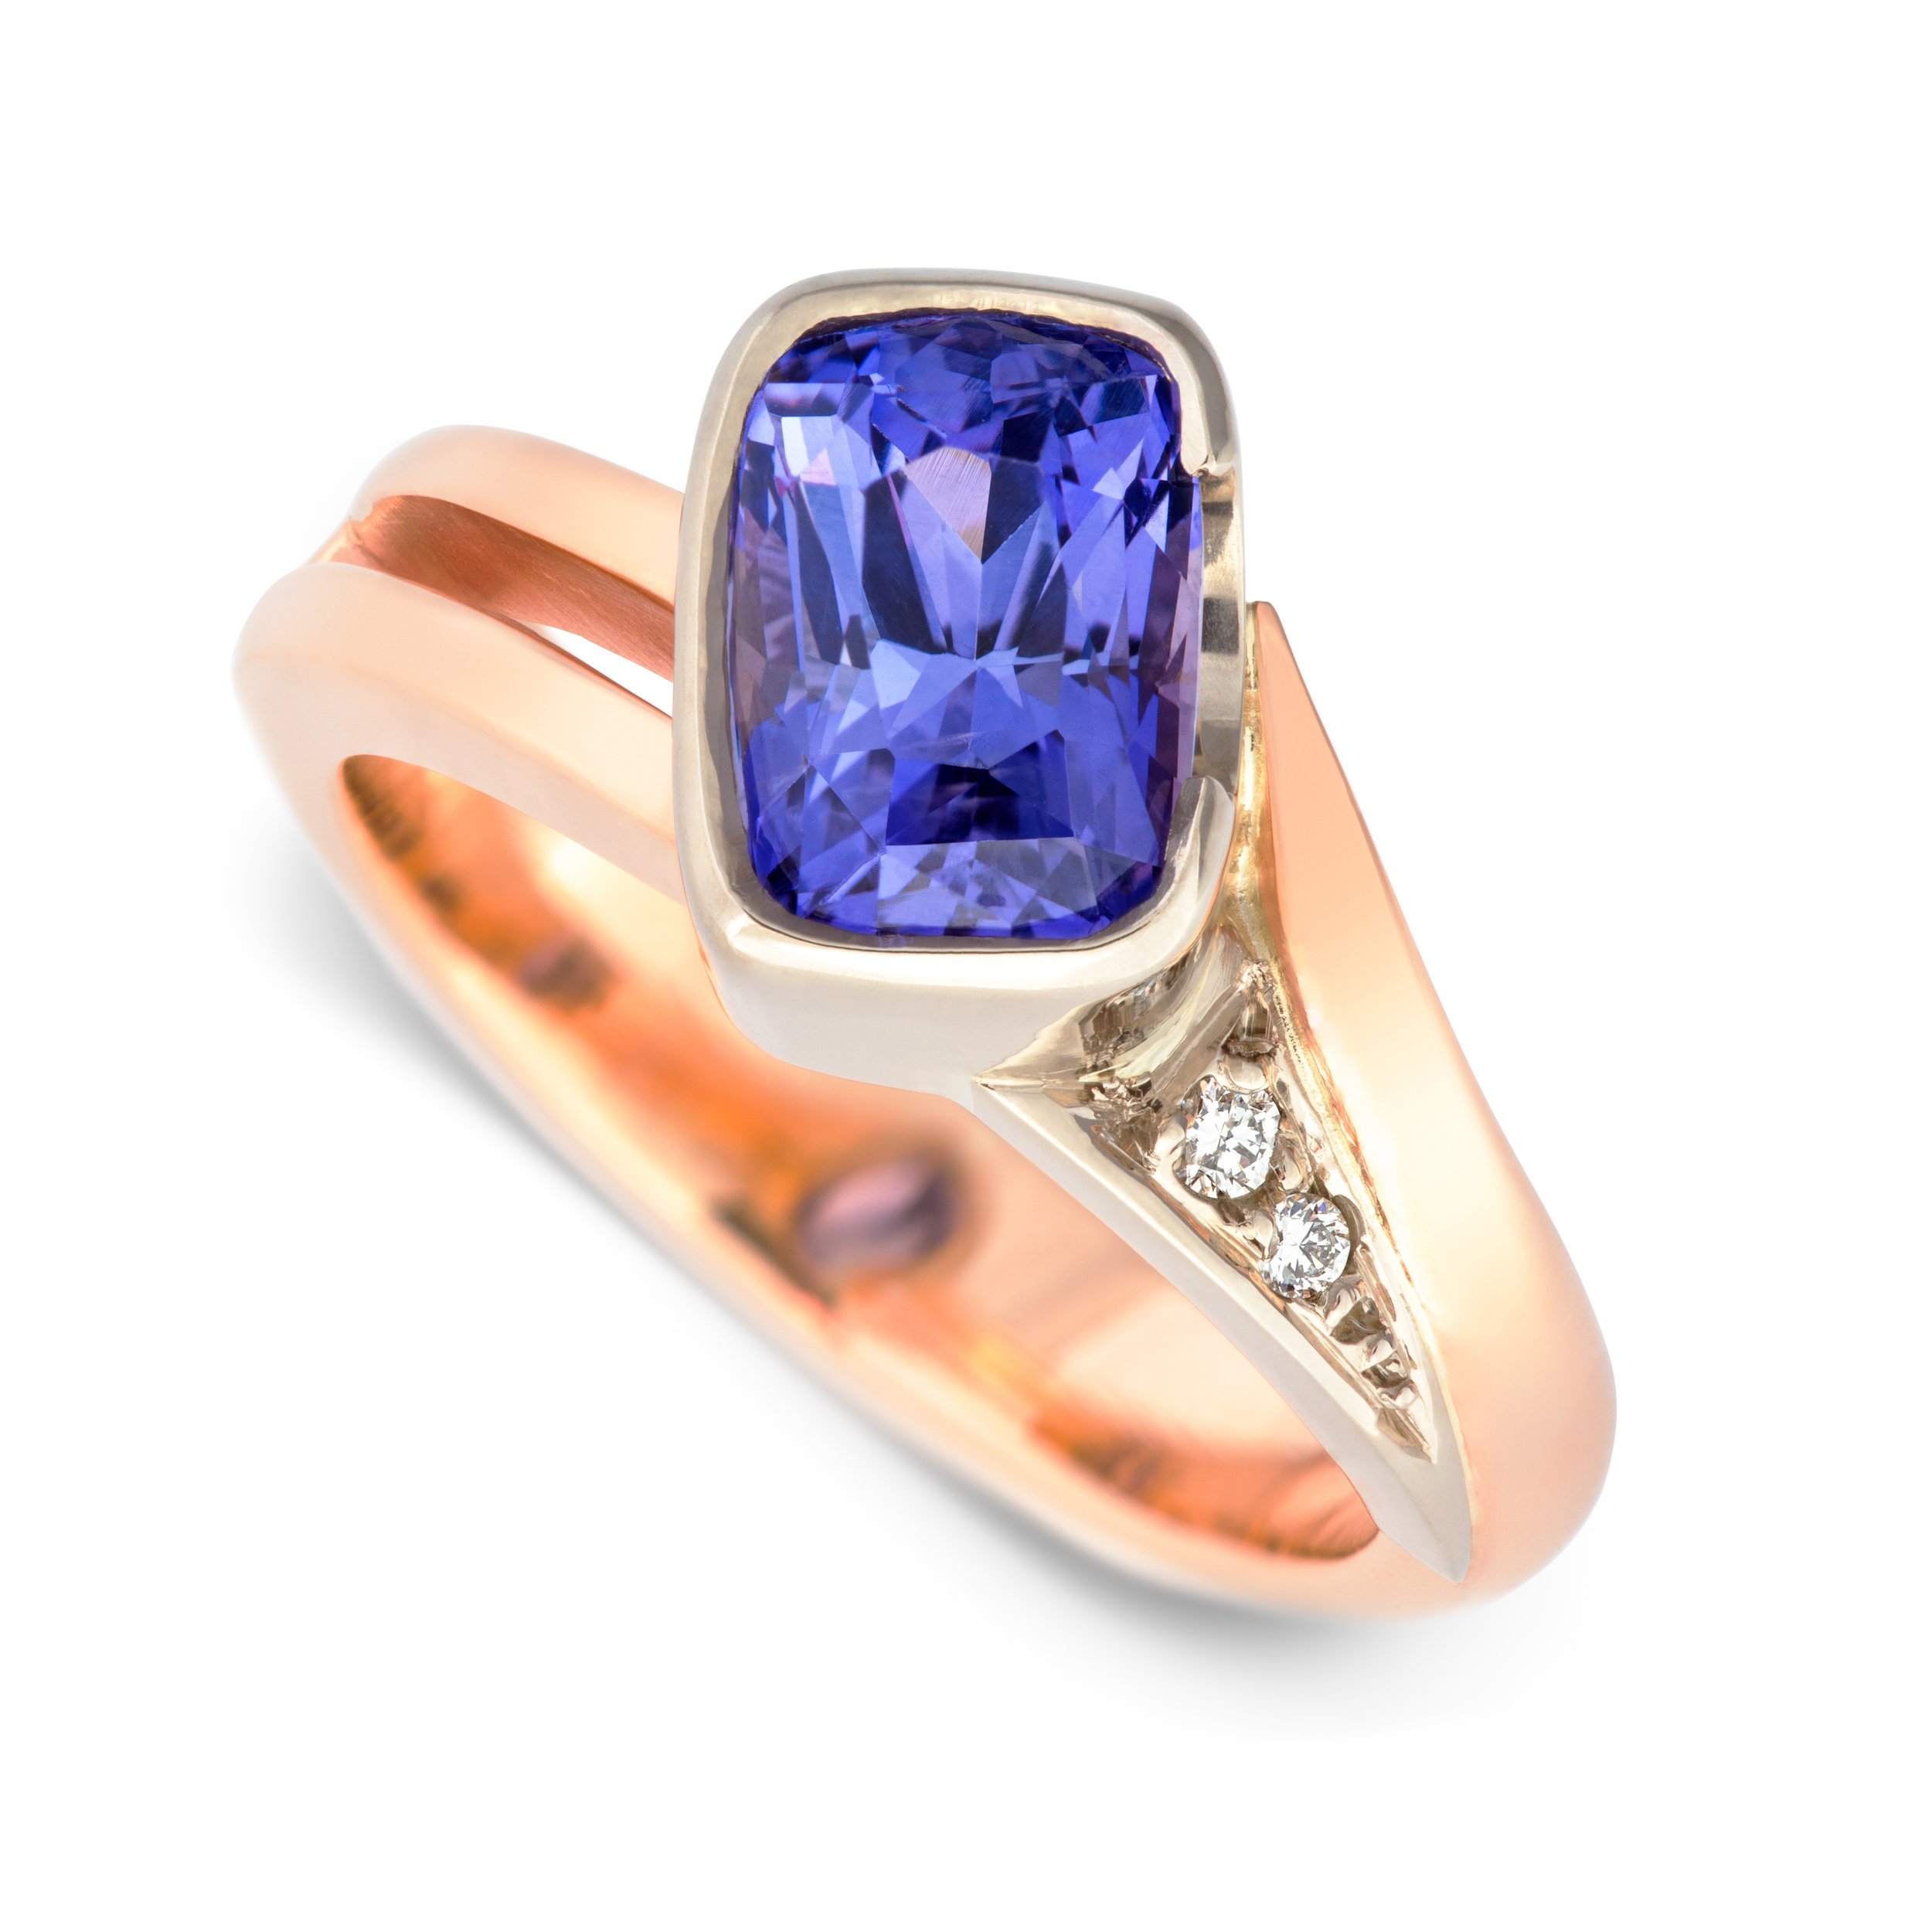 Bespoke 9ct rose gold, purple sapphire and diamond engagement ring commission